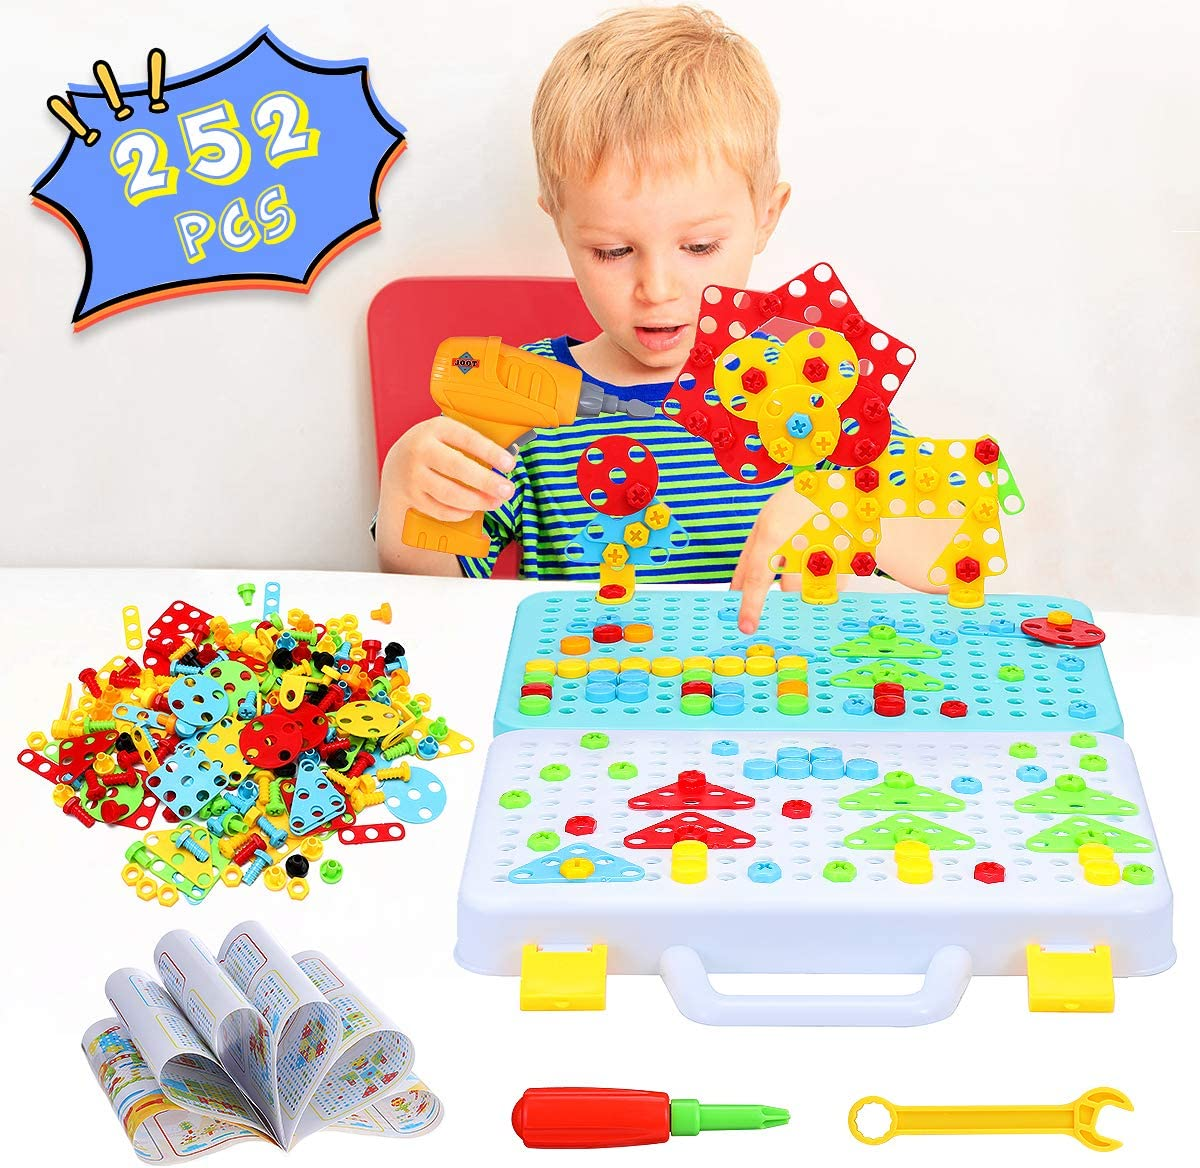 Creative Games and Fun Pickwoo 252+ Pieces Electric DIY Drill Educational Set Building Block Games Set STEM Learning Toys 3D and 2D Construction Engineering Building Blocks for Boys and Girls